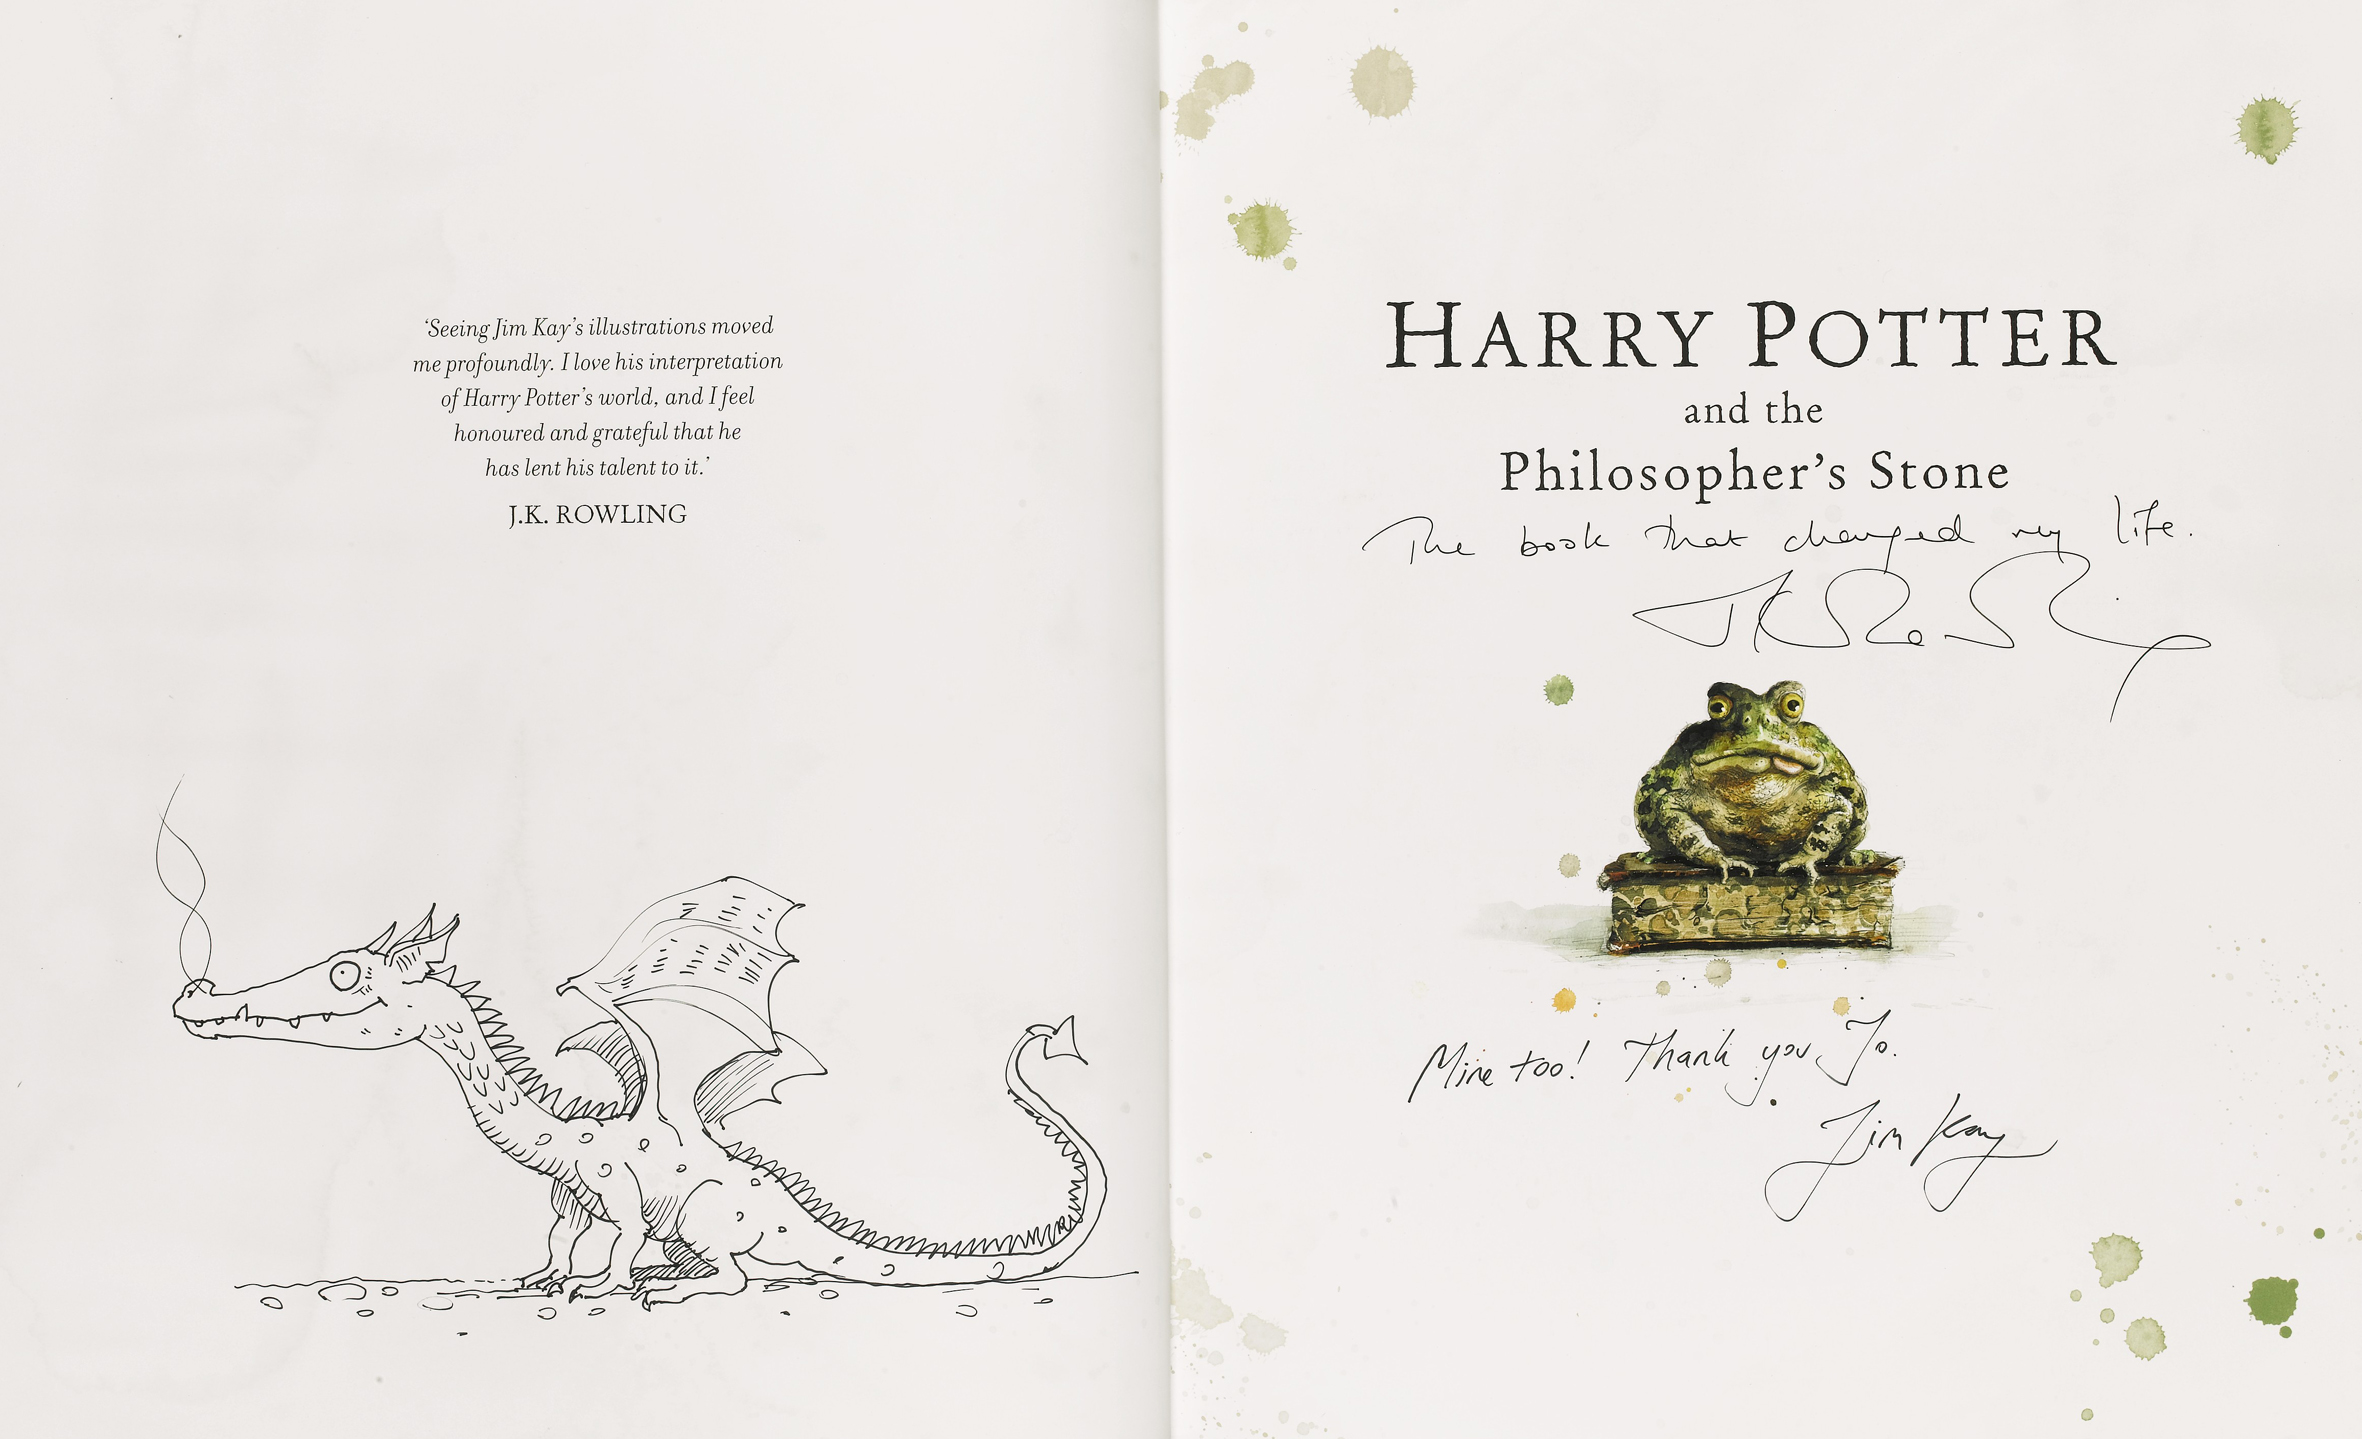 Deluxe edition illustrated Philosopher's Stone autographs